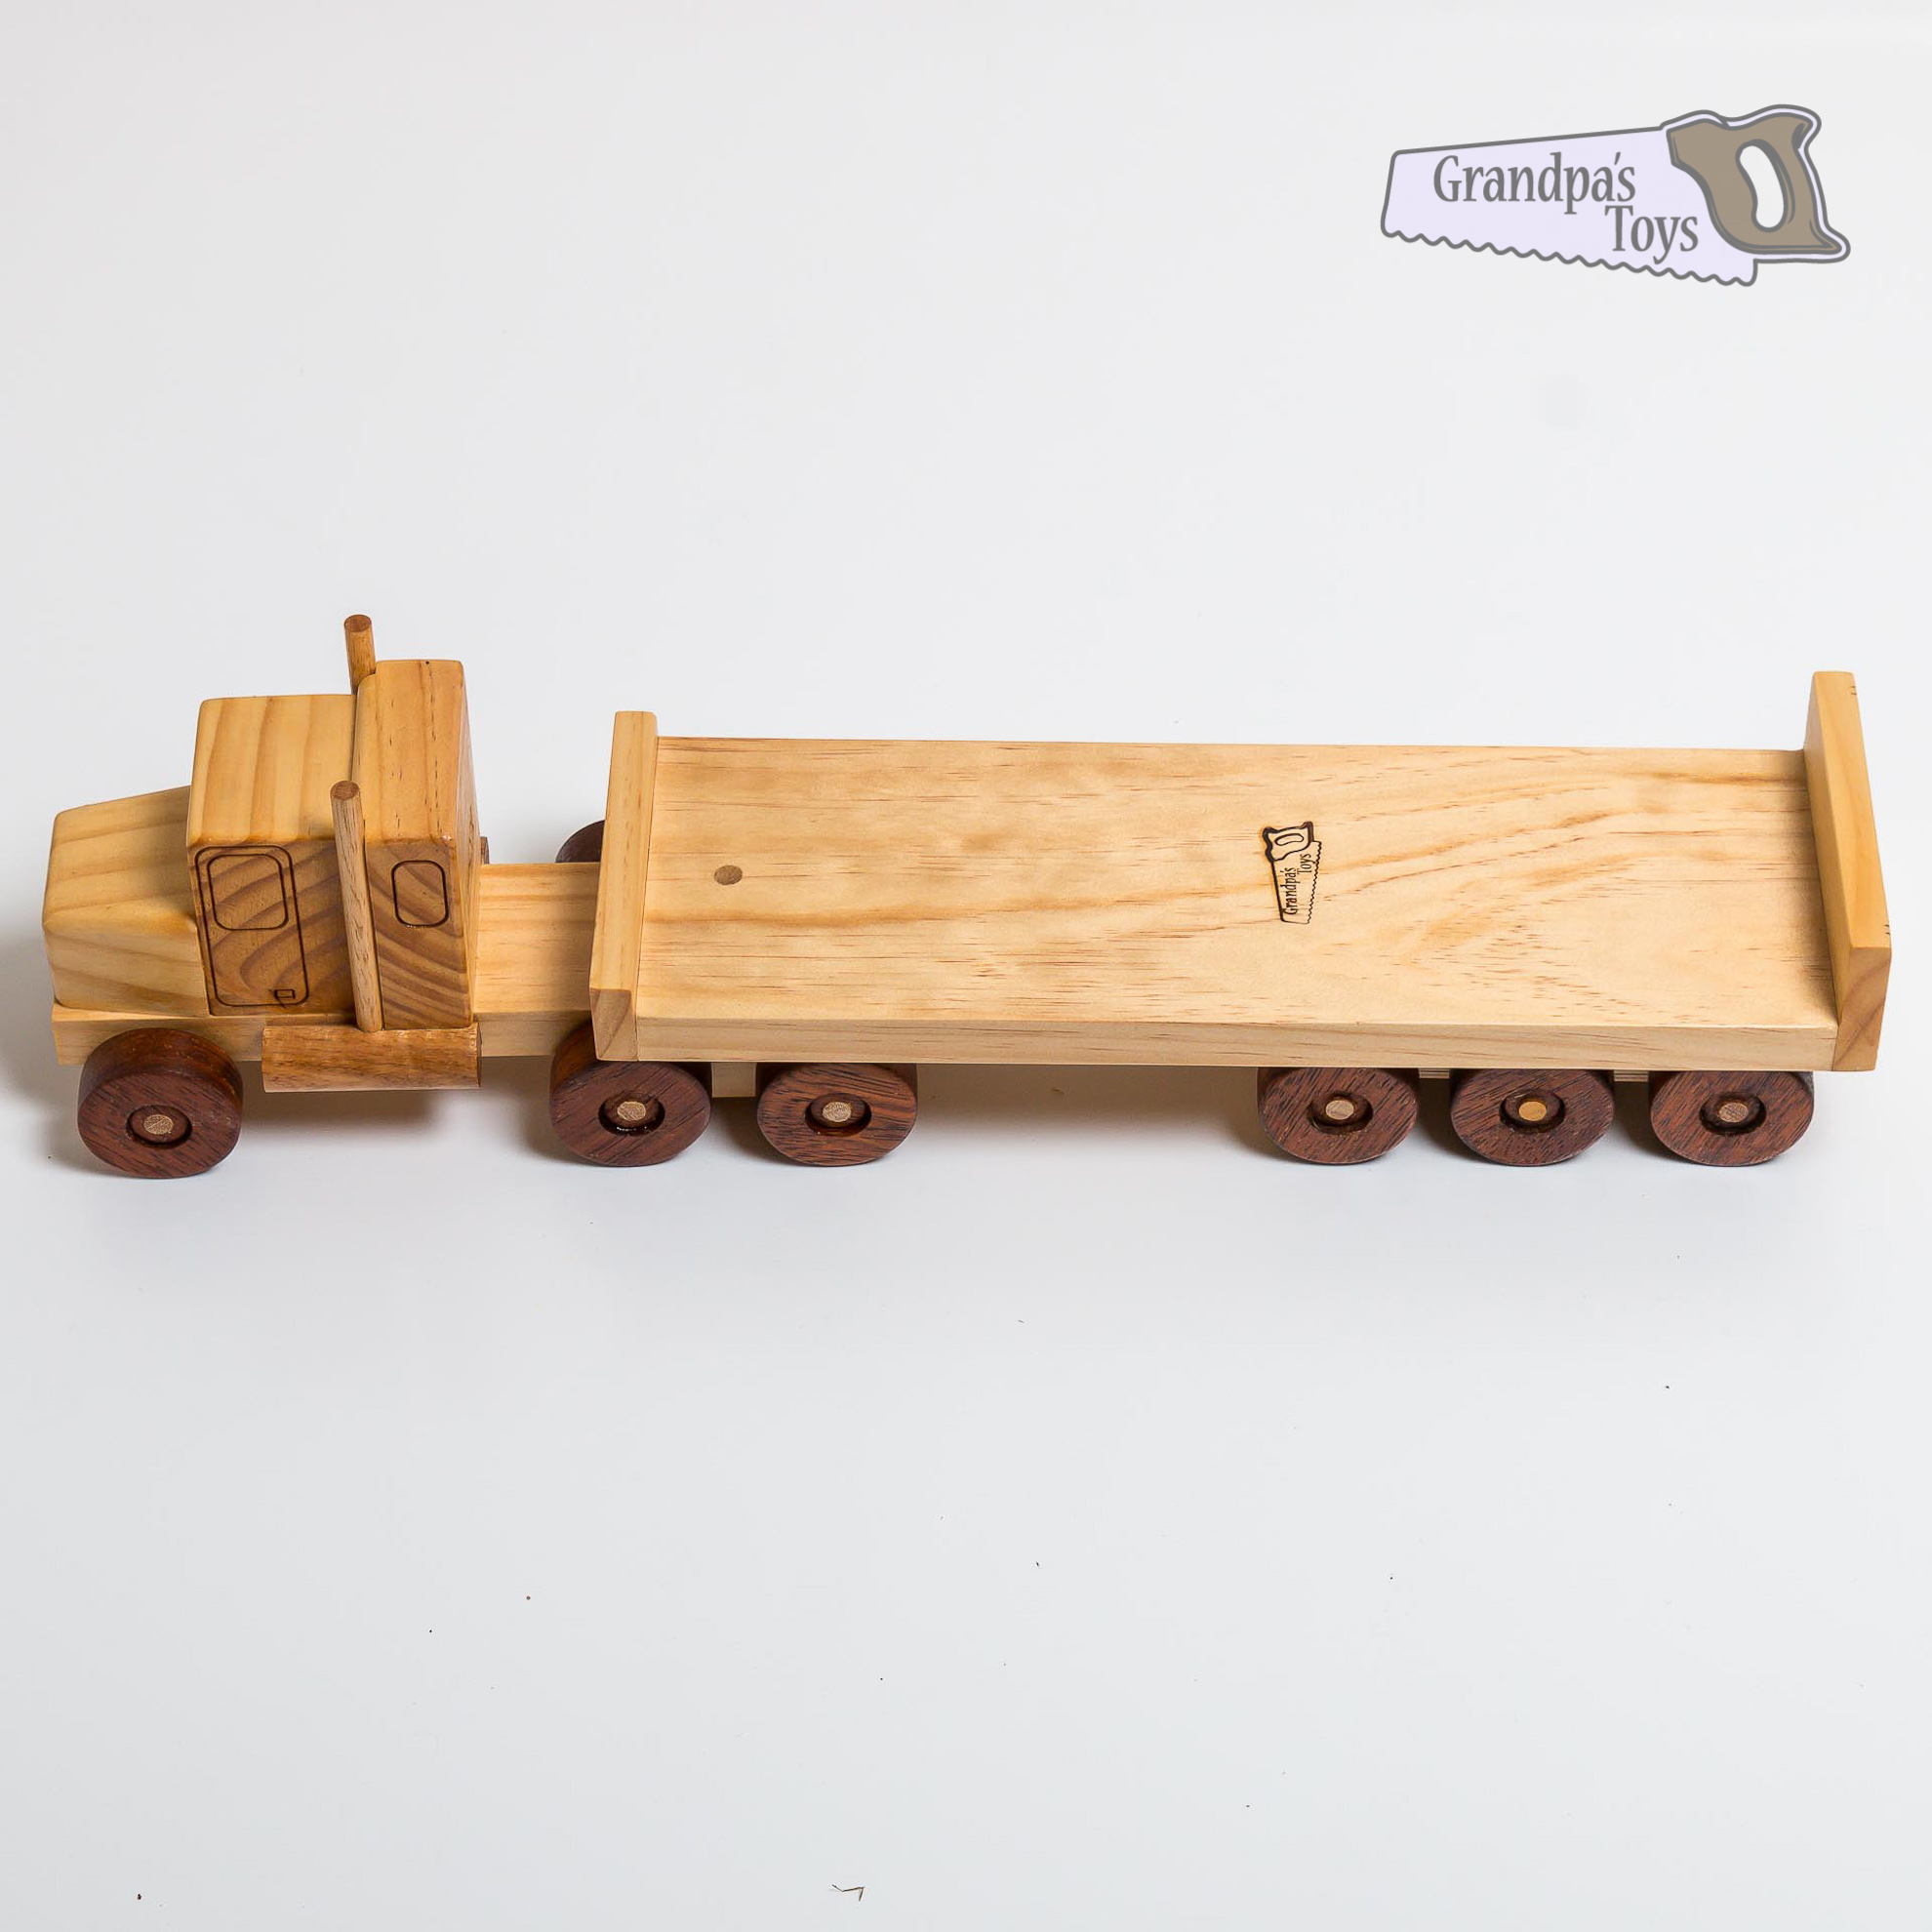 Toy Truck and Flat Trailer - Grandpa's Toys